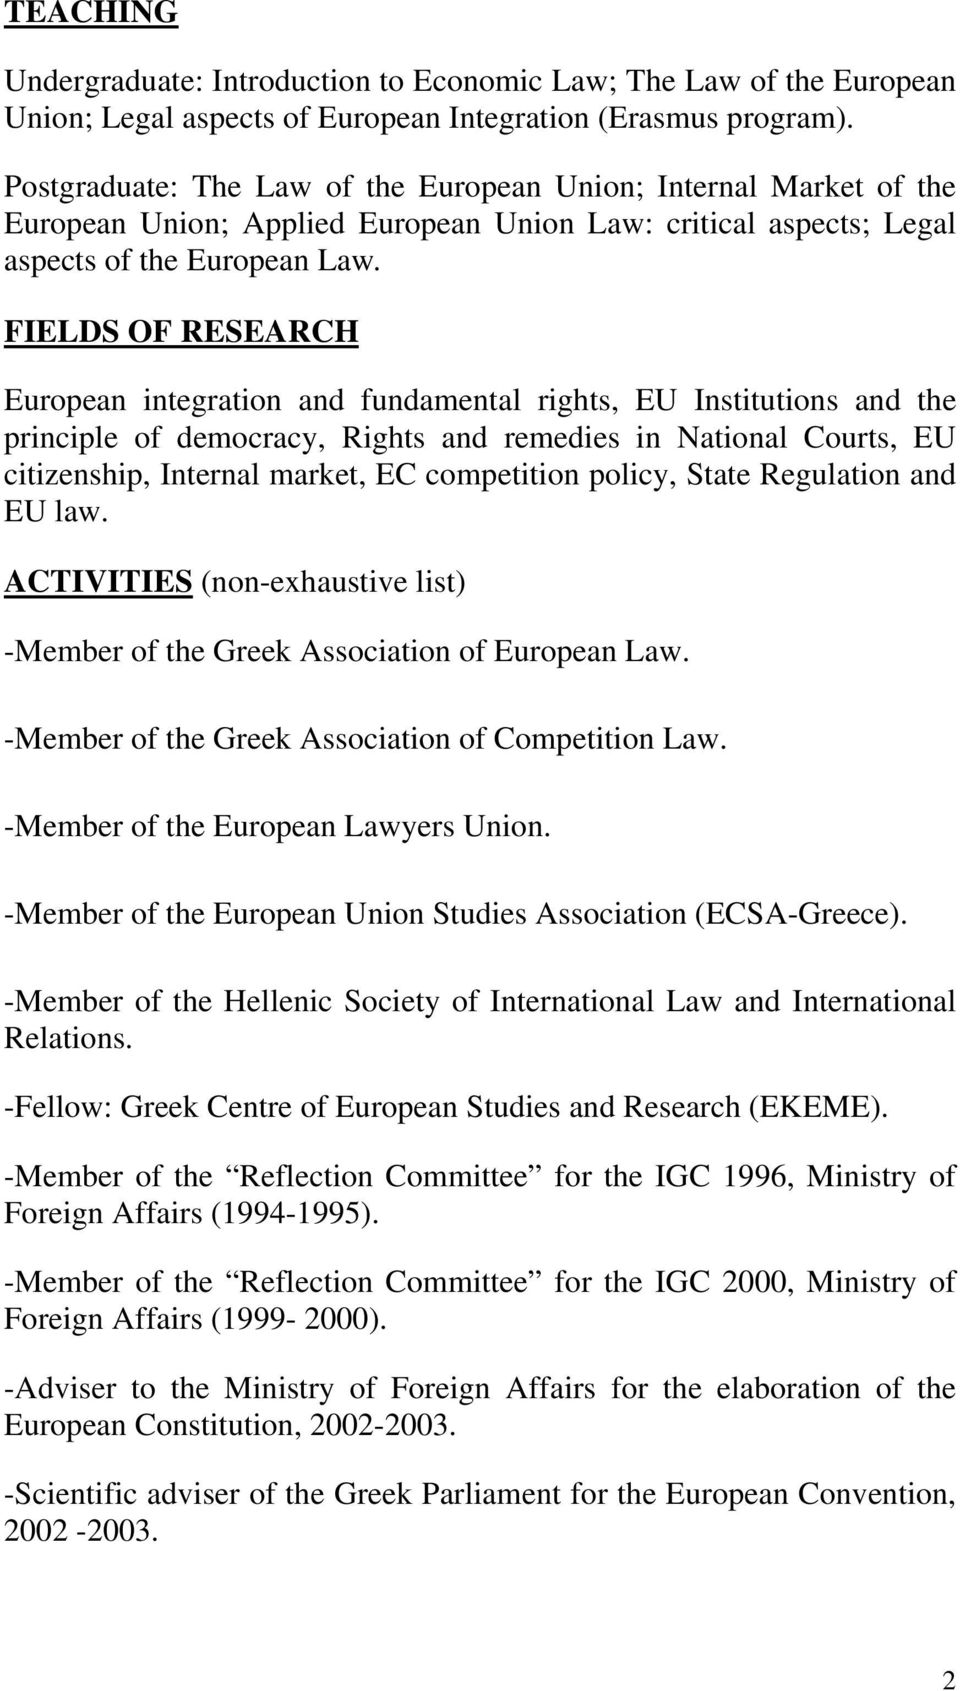 FIELDS OF RESEARCH European integration and fundamental rights, EU Institutions and the principle of democracy, Rights and remedies in National Courts, EU citizenship, Internal market, EC competition